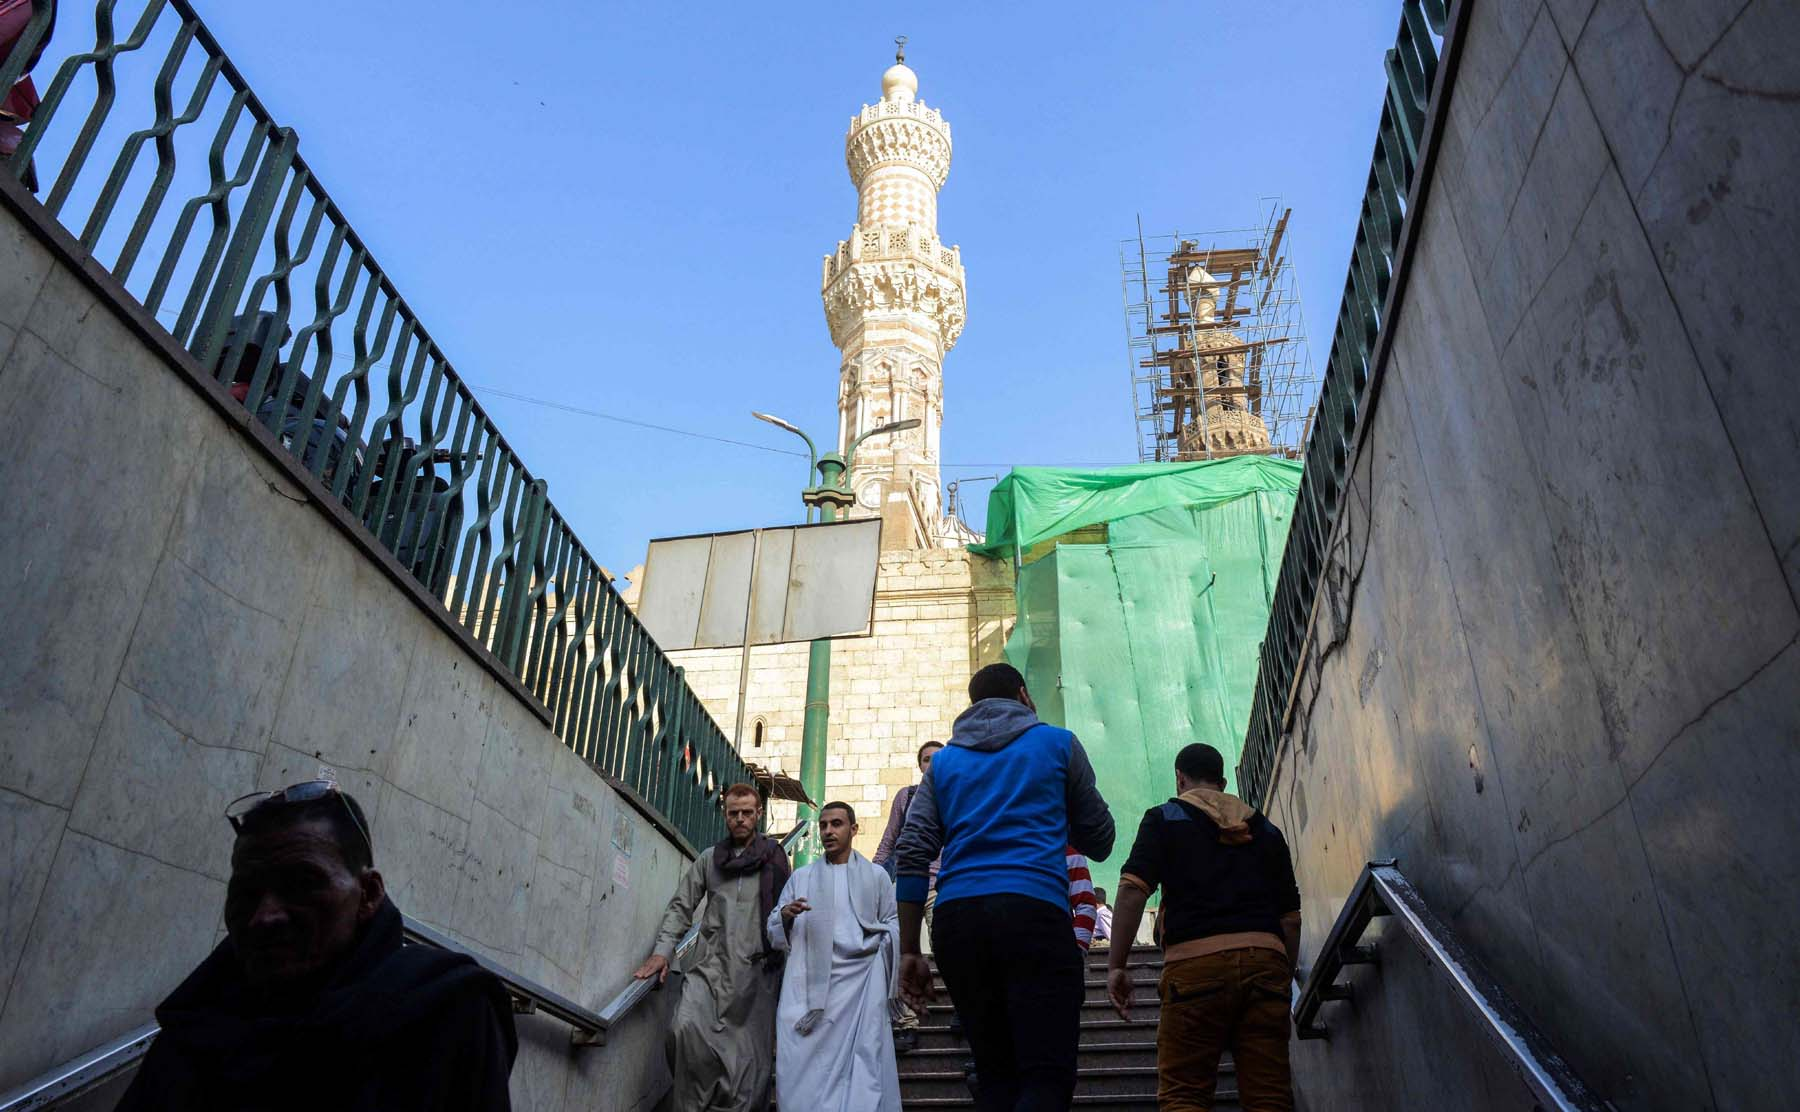 A view of a minaret of al-Azhar mosque in Cairo as passers-by climb out of a pedestrian-crossing tunnel traversing a main street. (AFP)